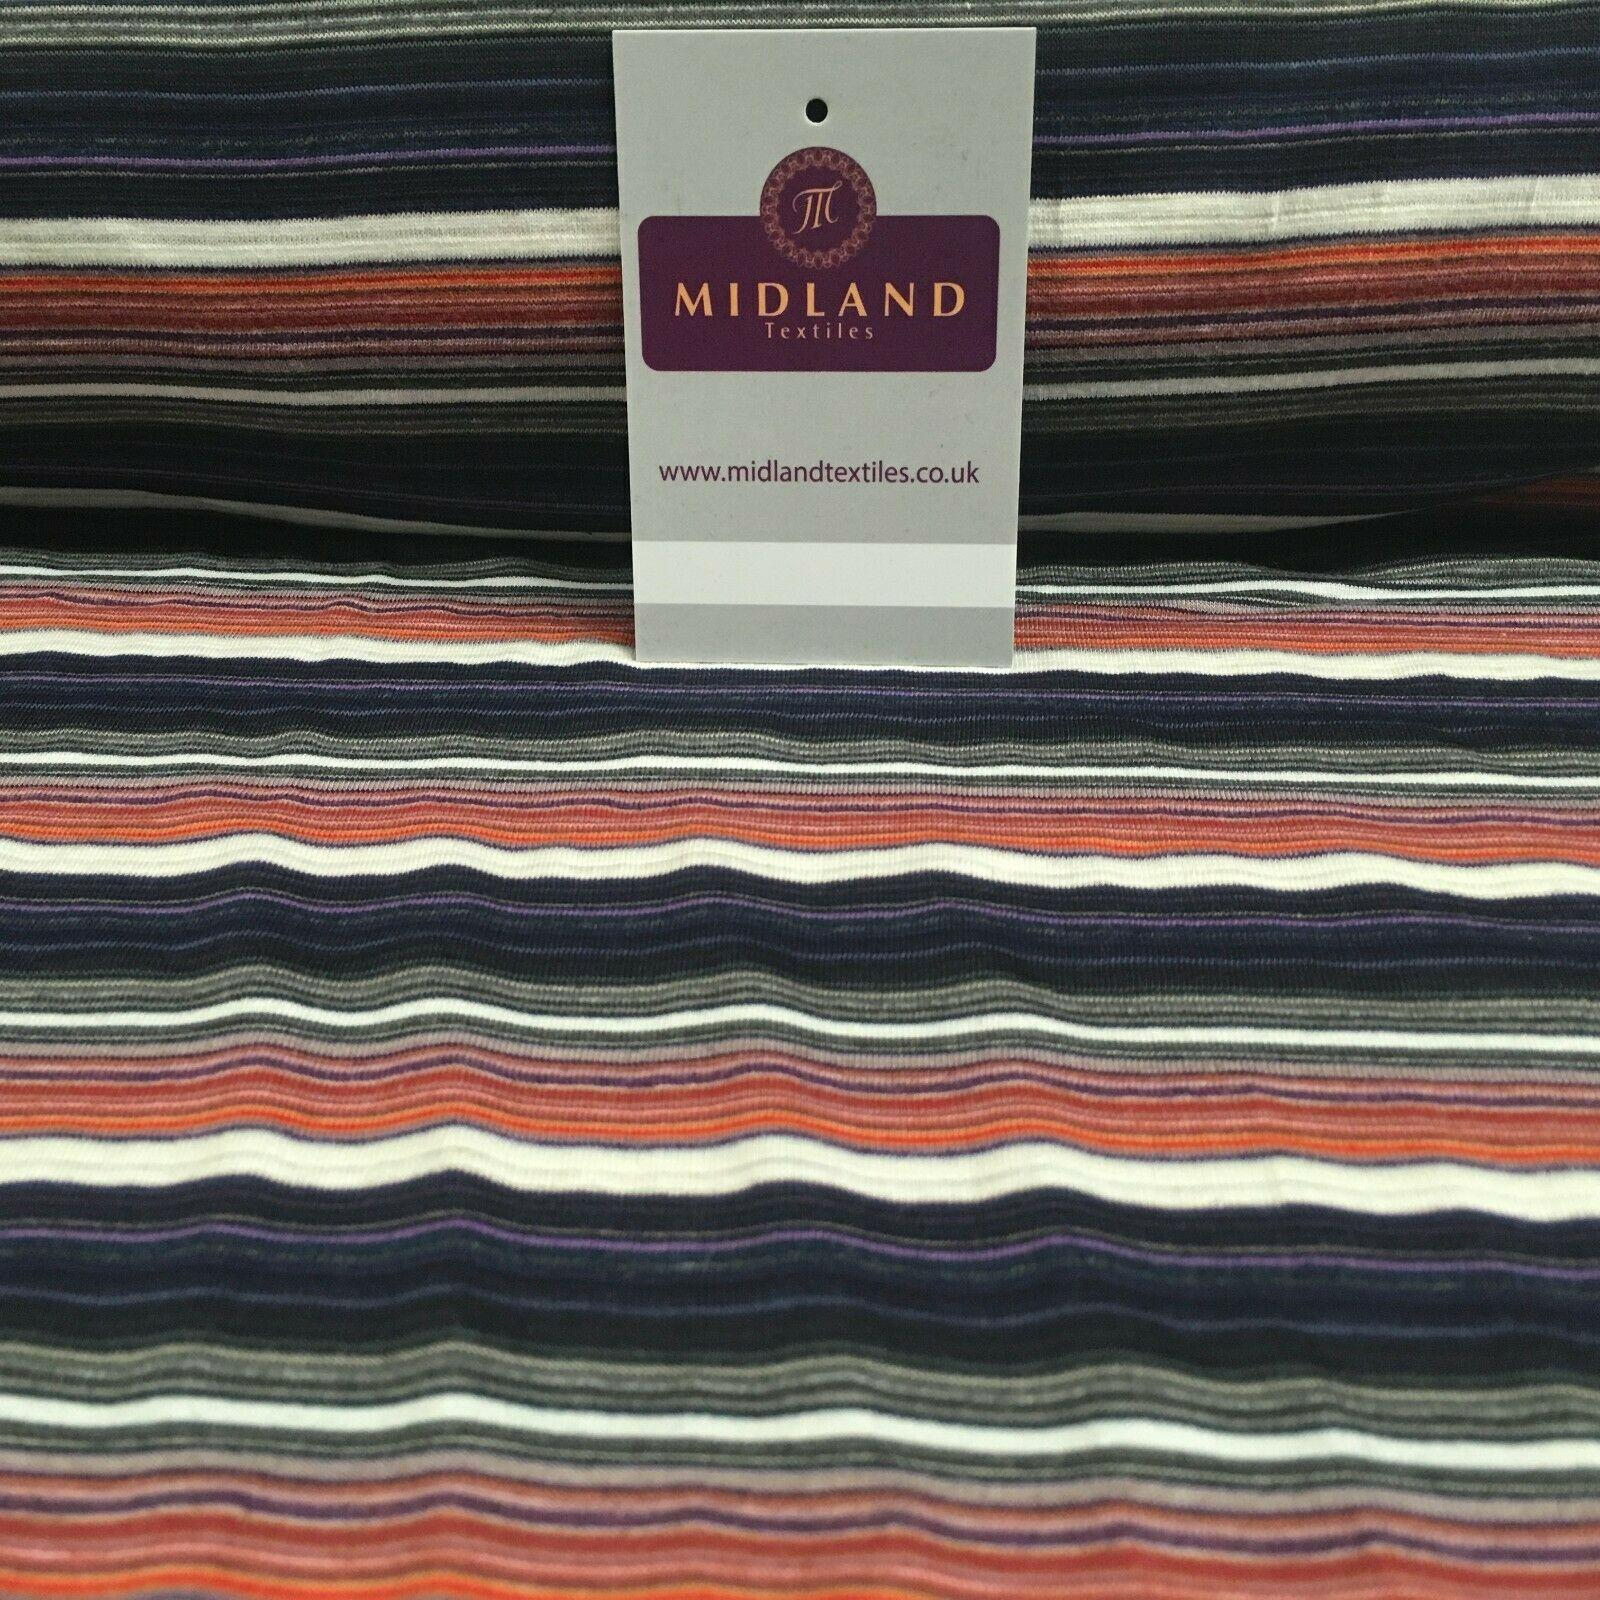 Horizontal Striped Cotton Stretch Jersey Dress fabric 150cm Wide MK1091 Mtex